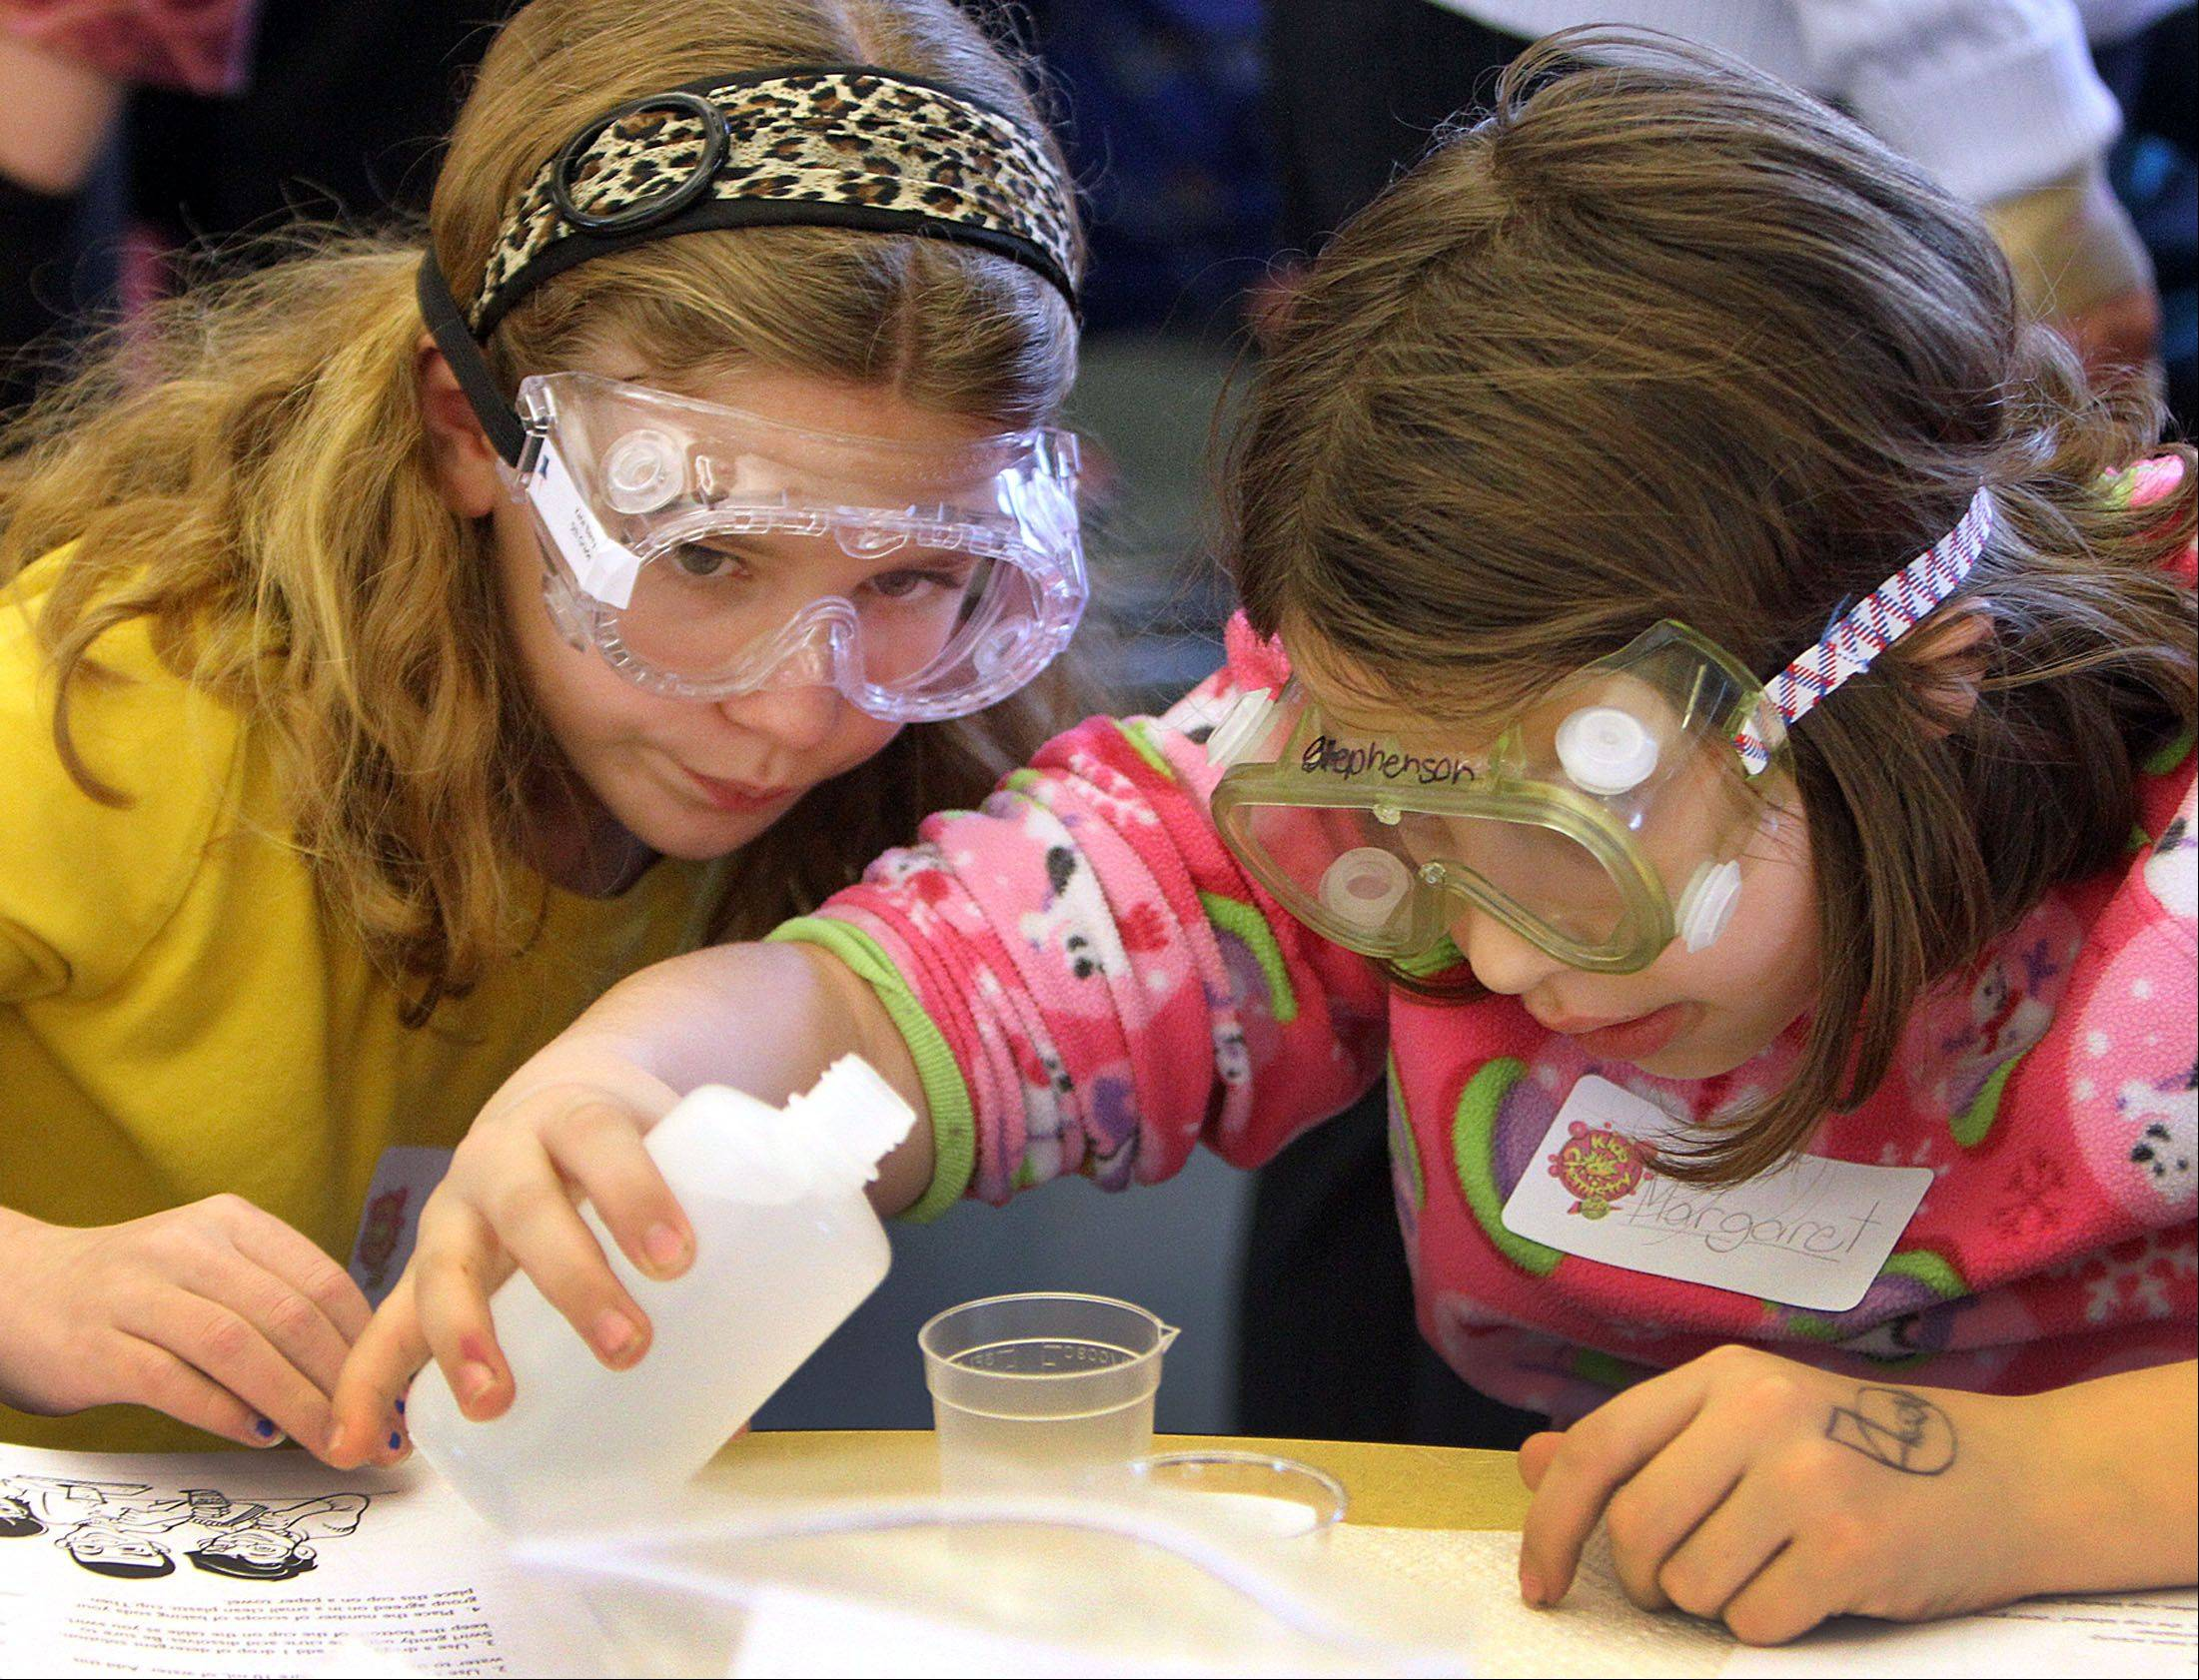 Copeland Manor School fifth-graders Kate Barry, left, and Margaret Stephenson participate in a science program called Kids in Chemistry on Thursday in Libertyville.